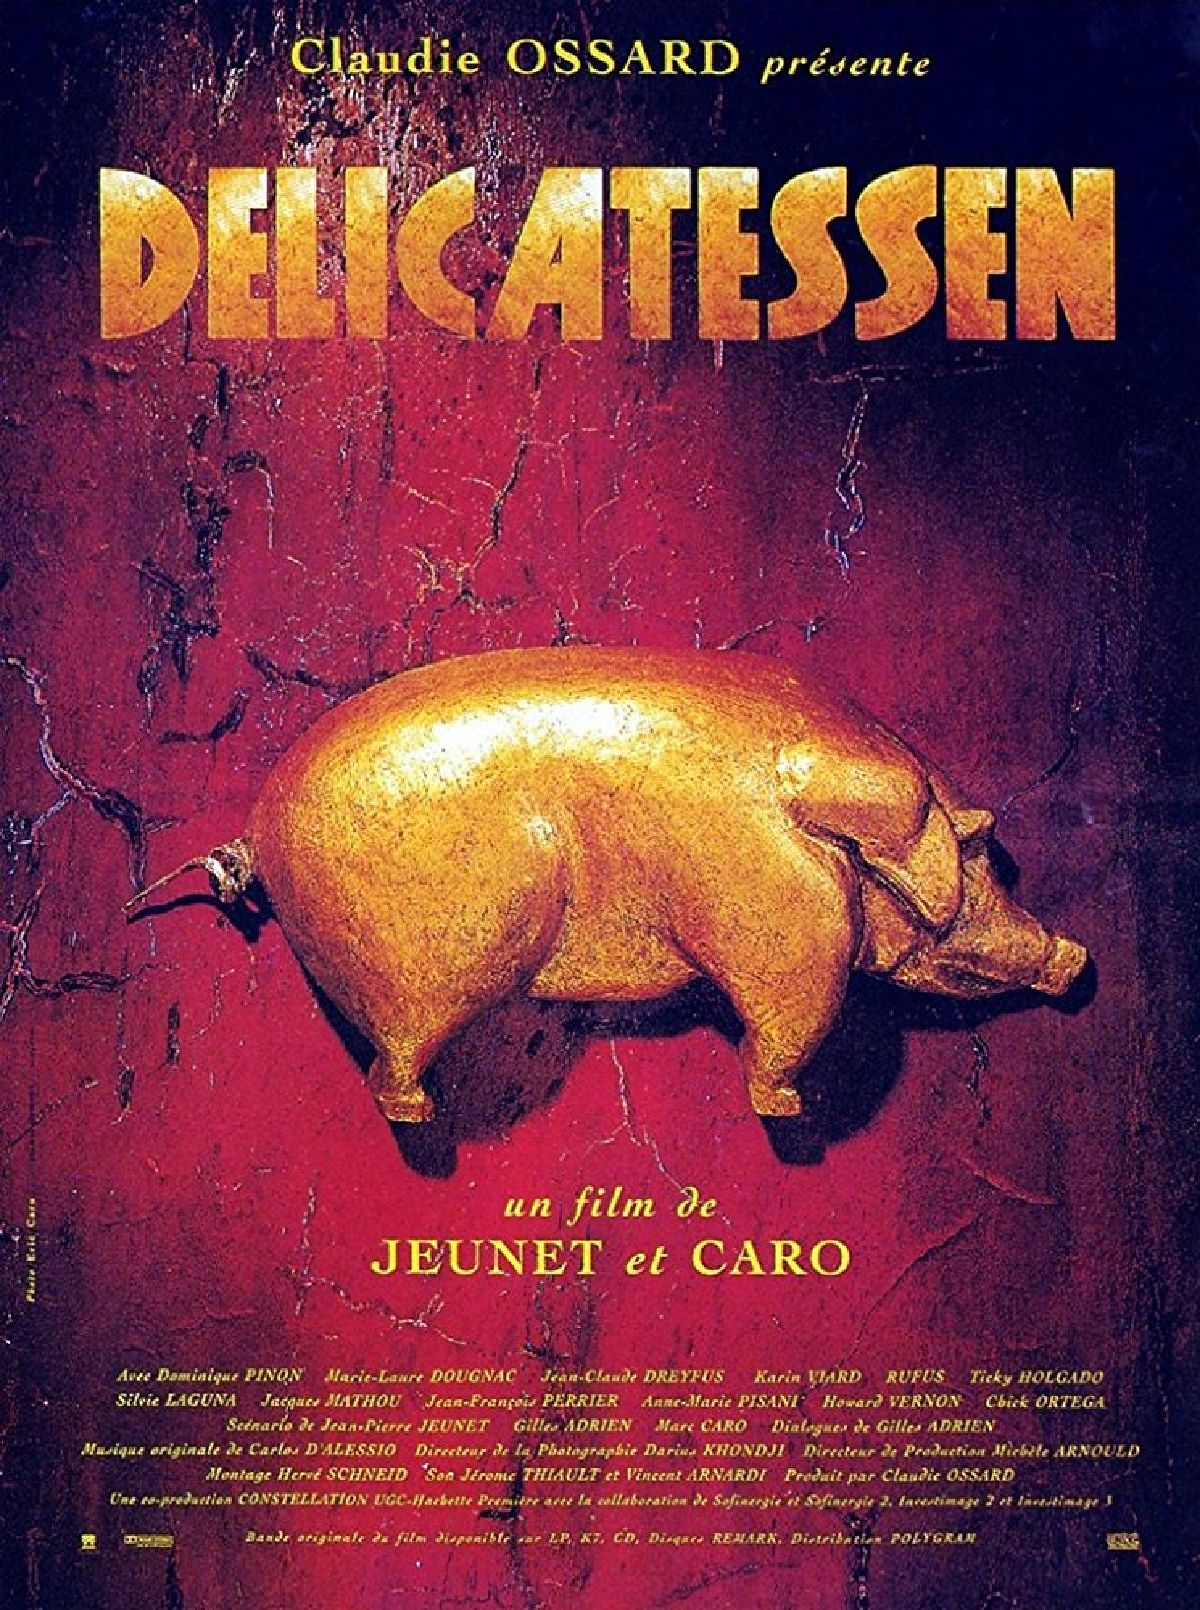 'Delicatessen' movie poster